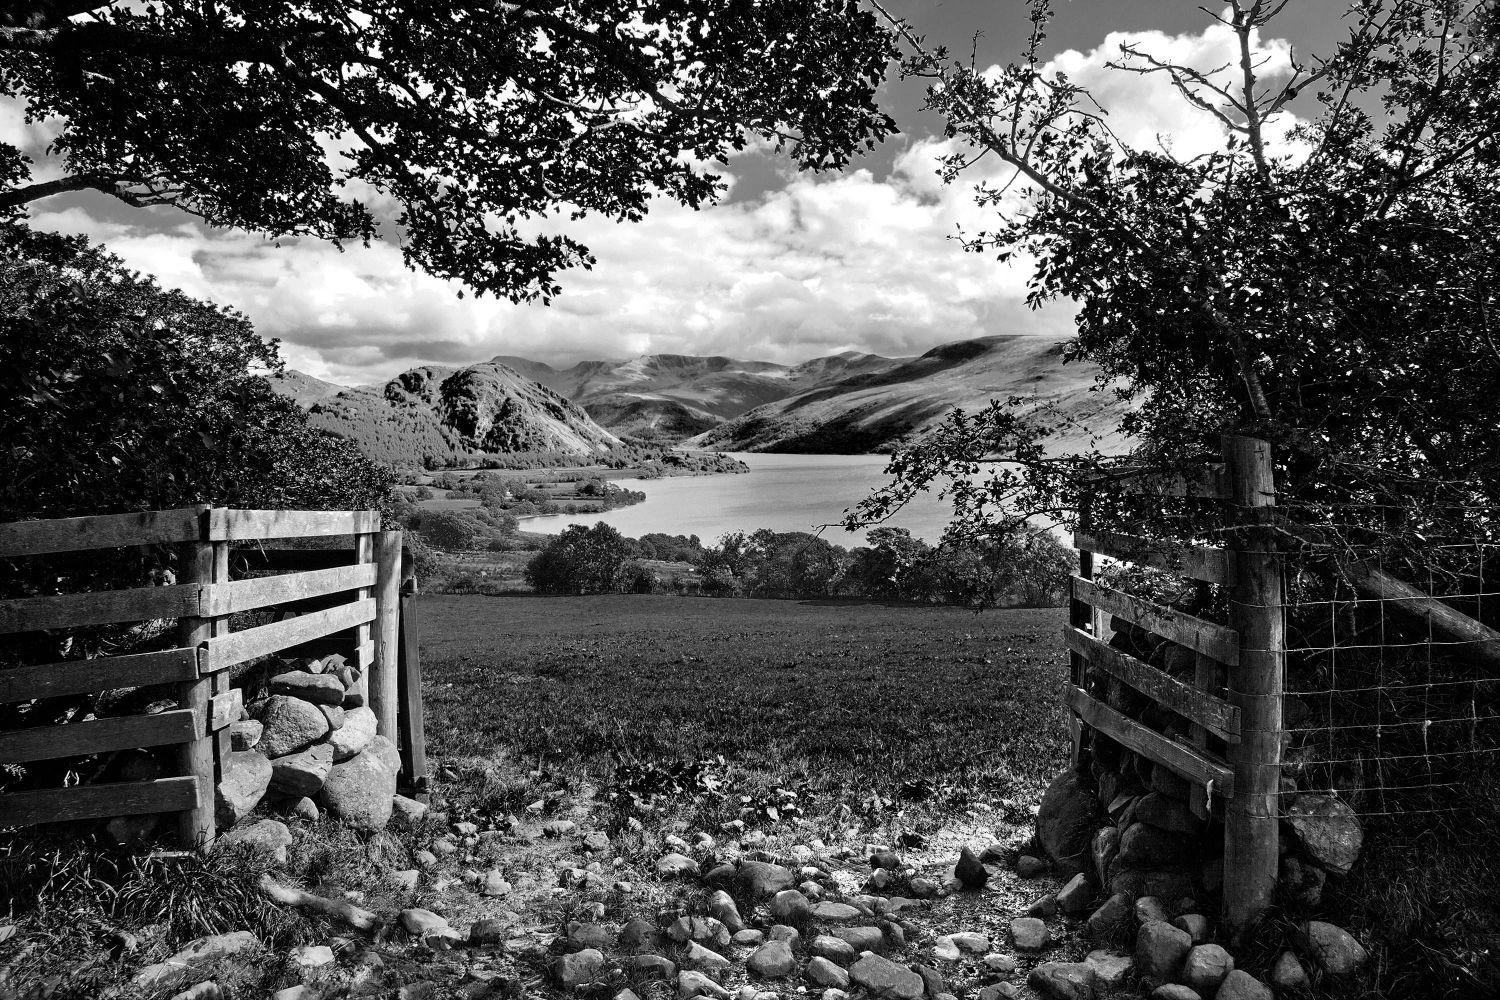 Through the Gates to Ennerdale in Black and White